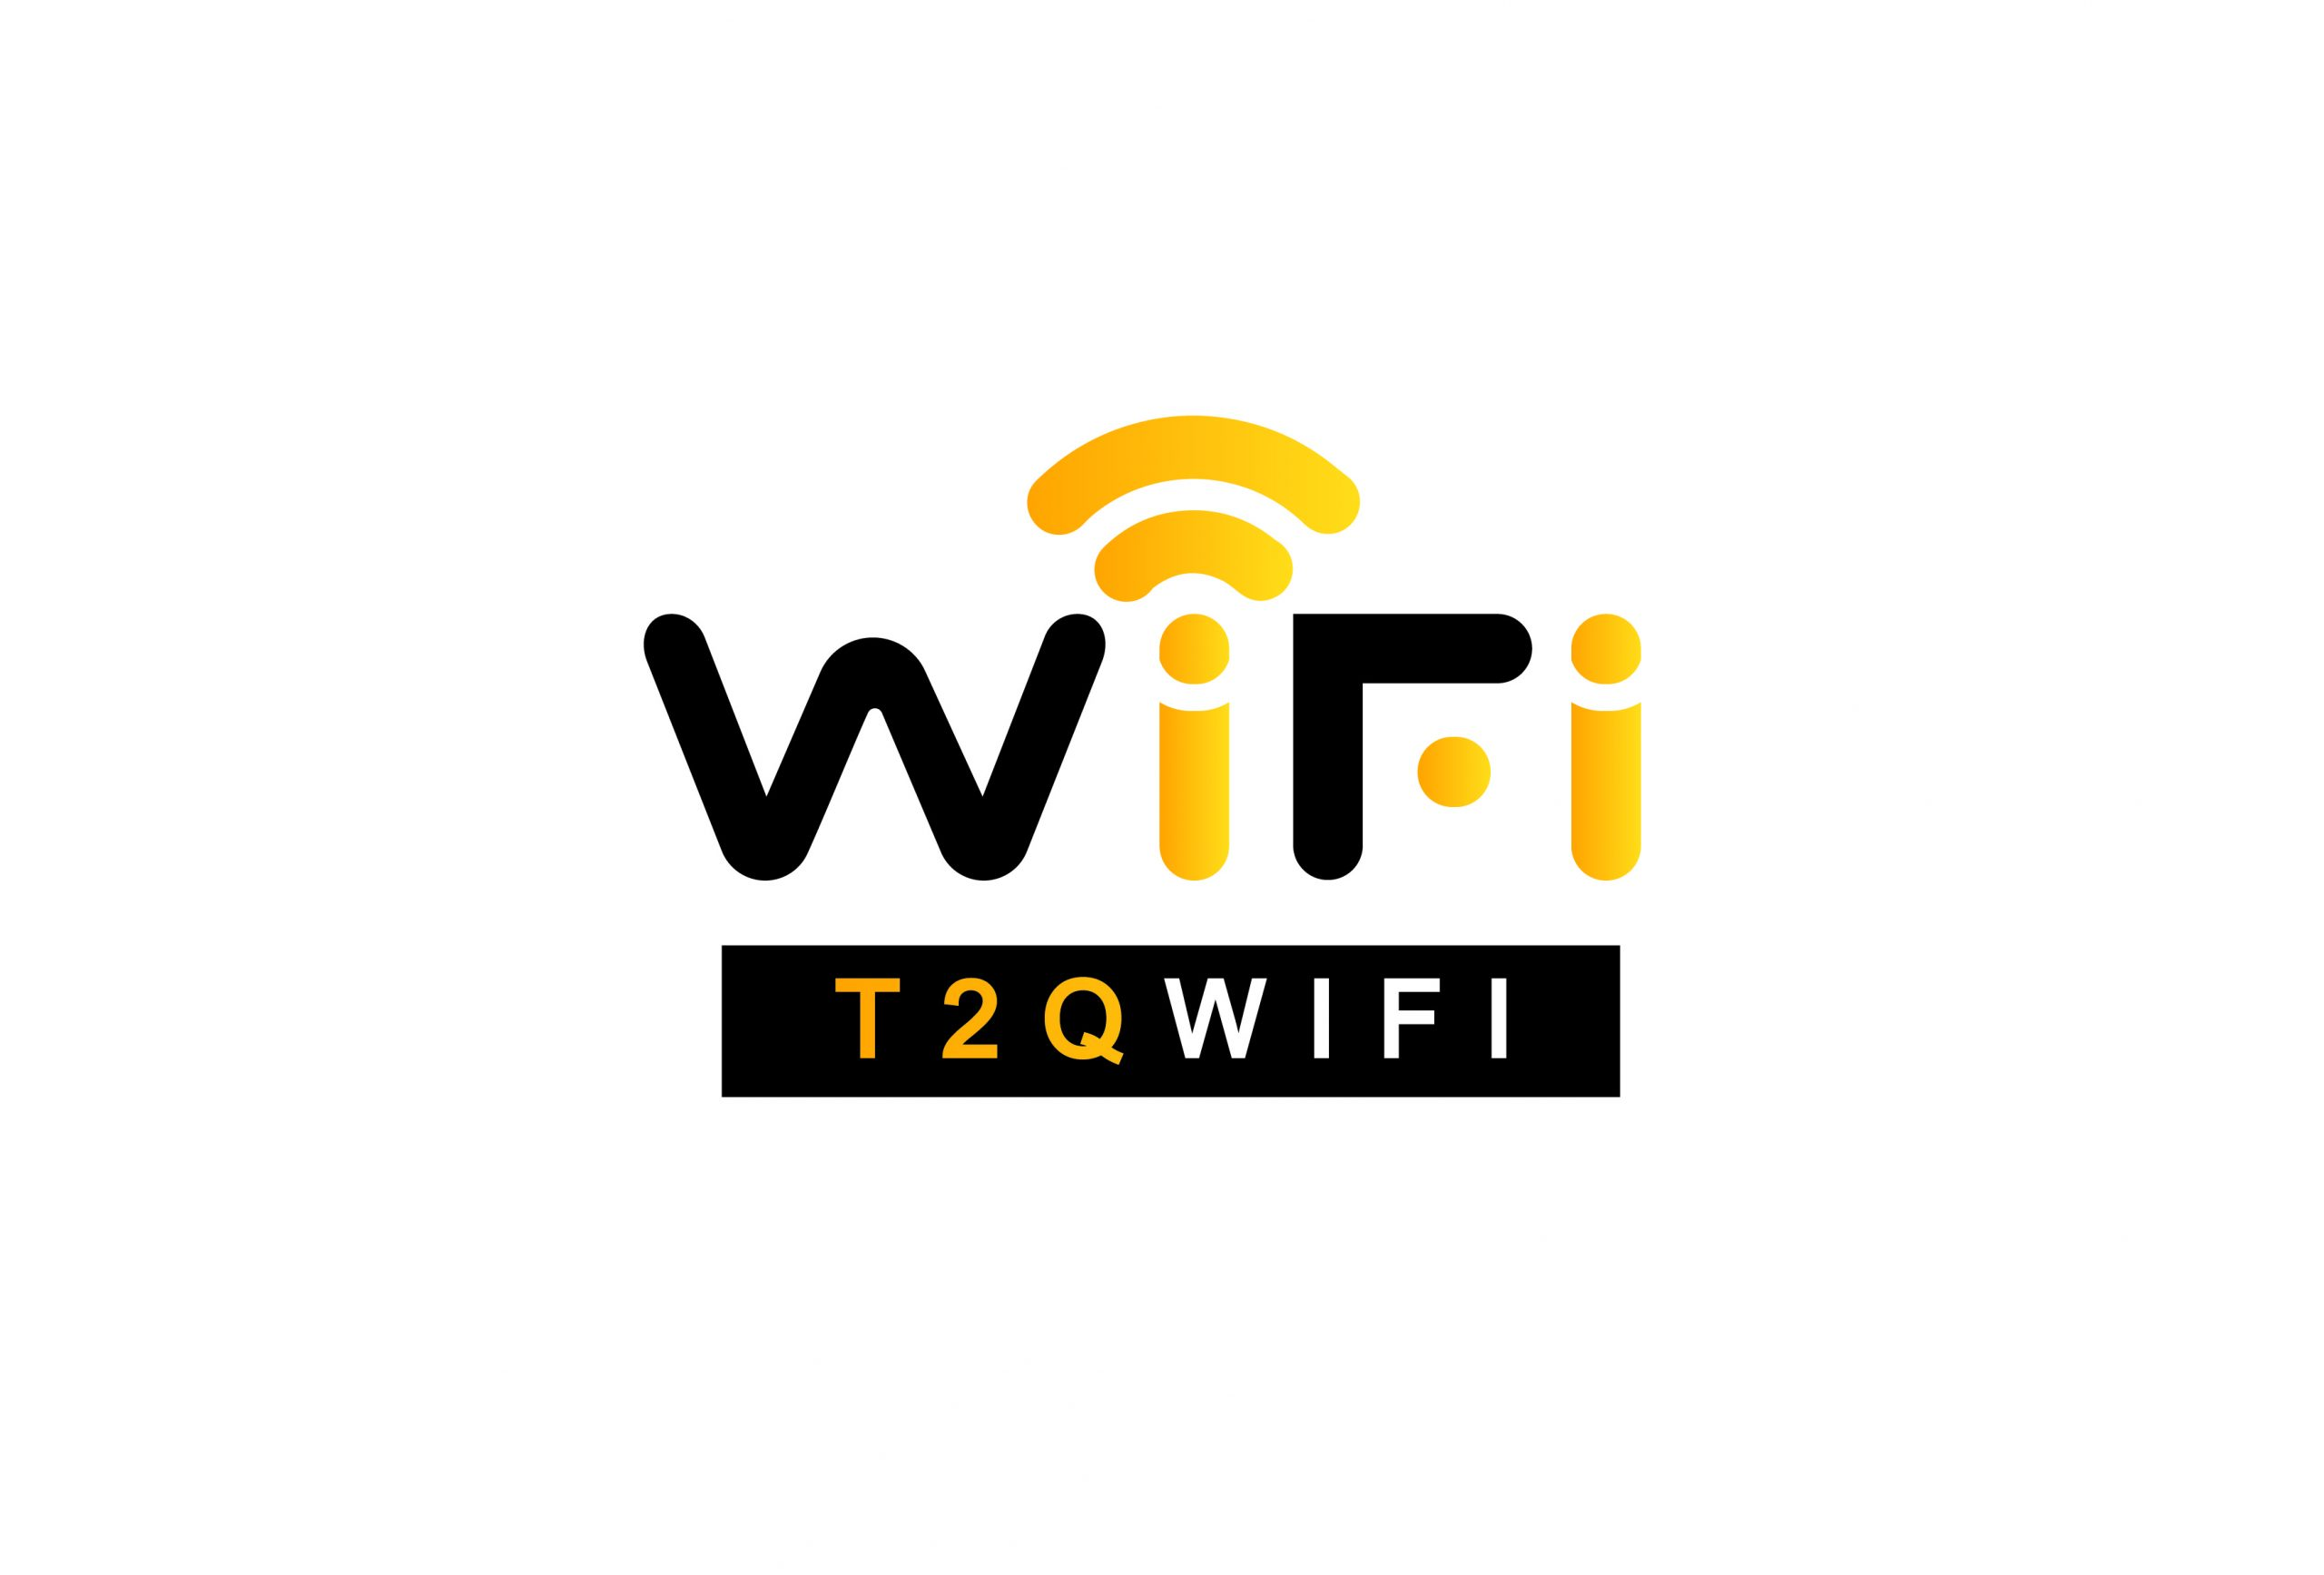 t2qwifi_ds-2cd2723g1-izs1